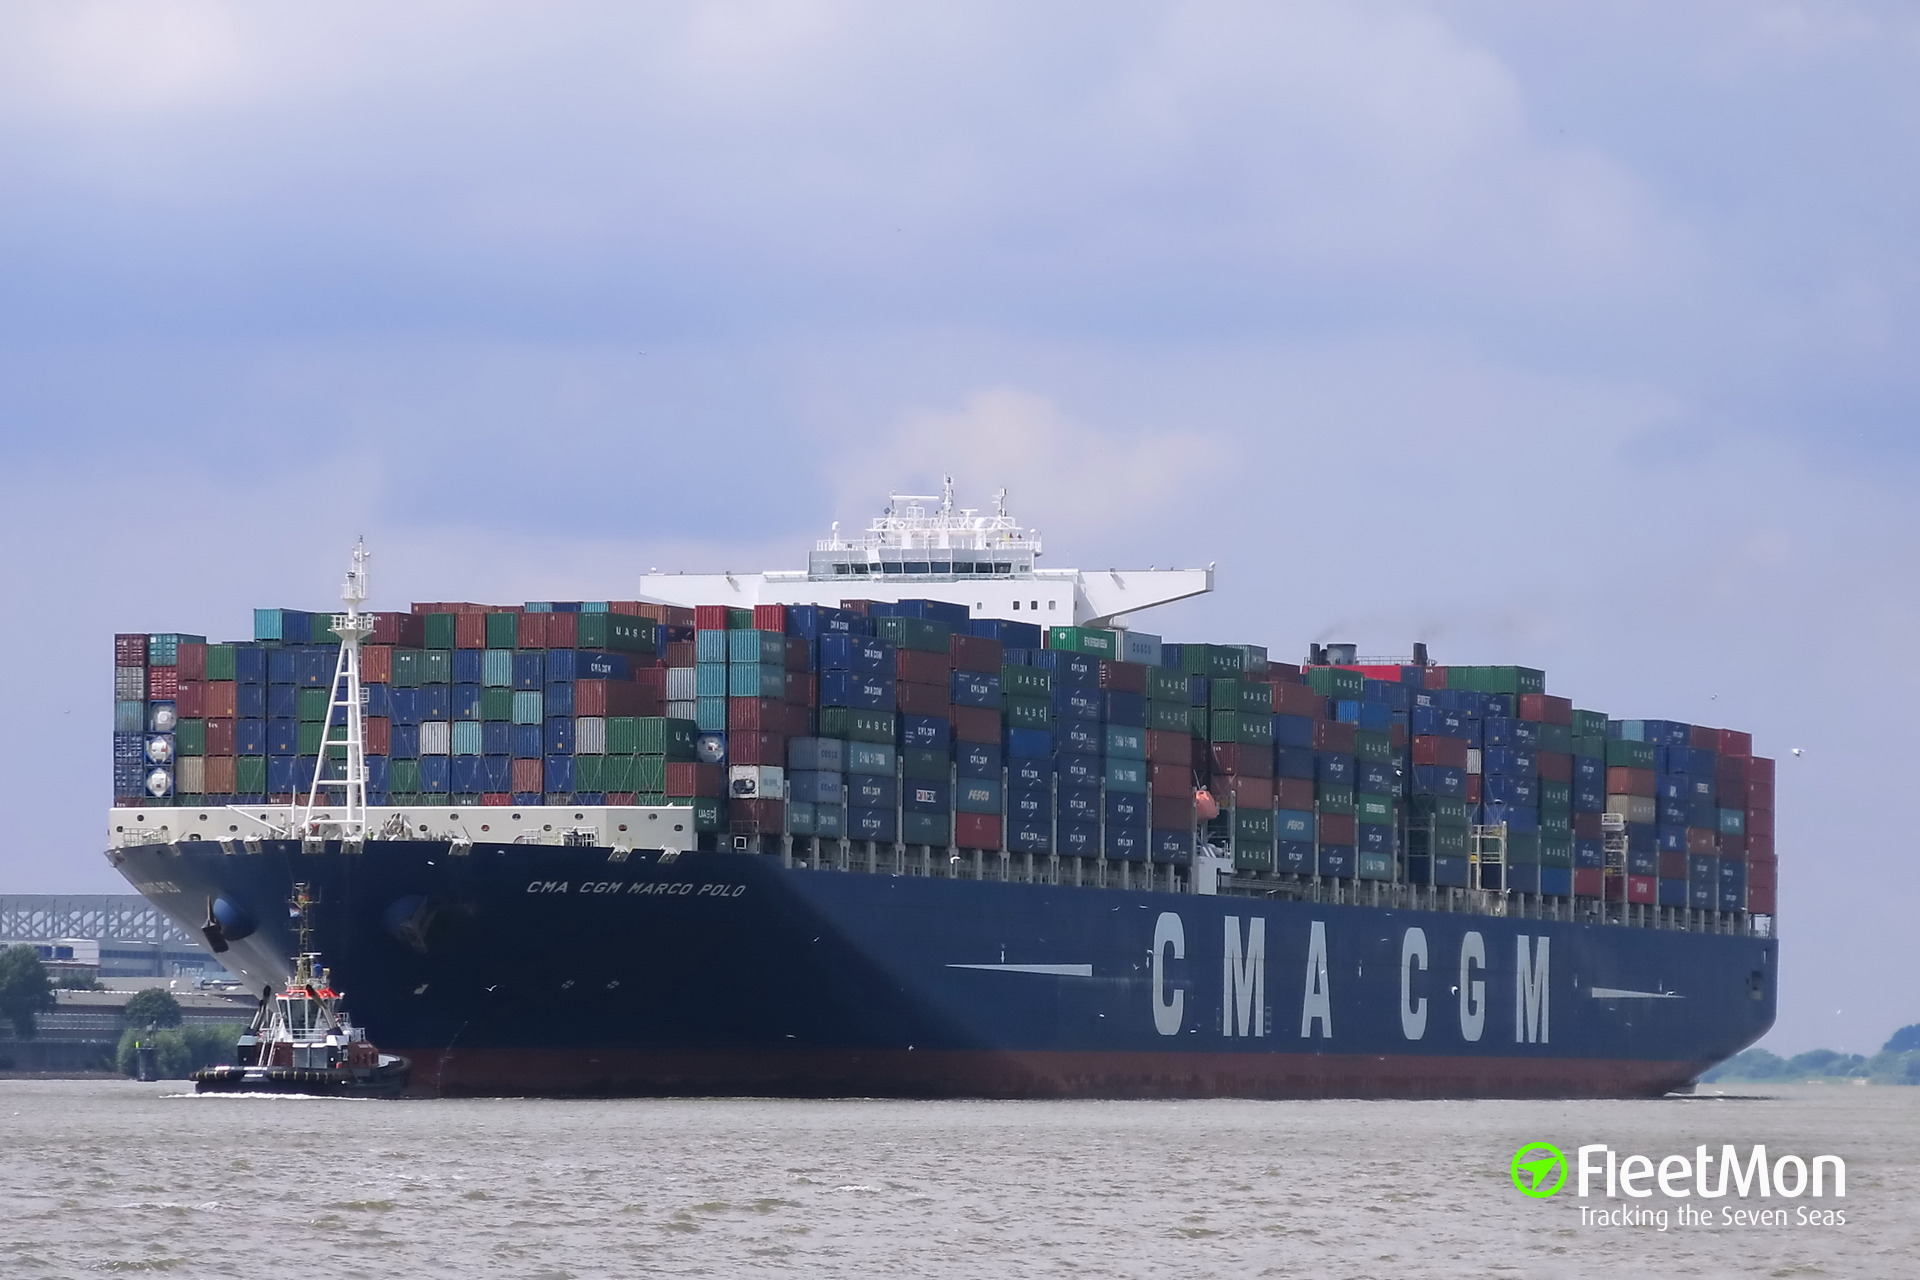 MARCO POLO, largest container ship of the world, to call Hamburg today